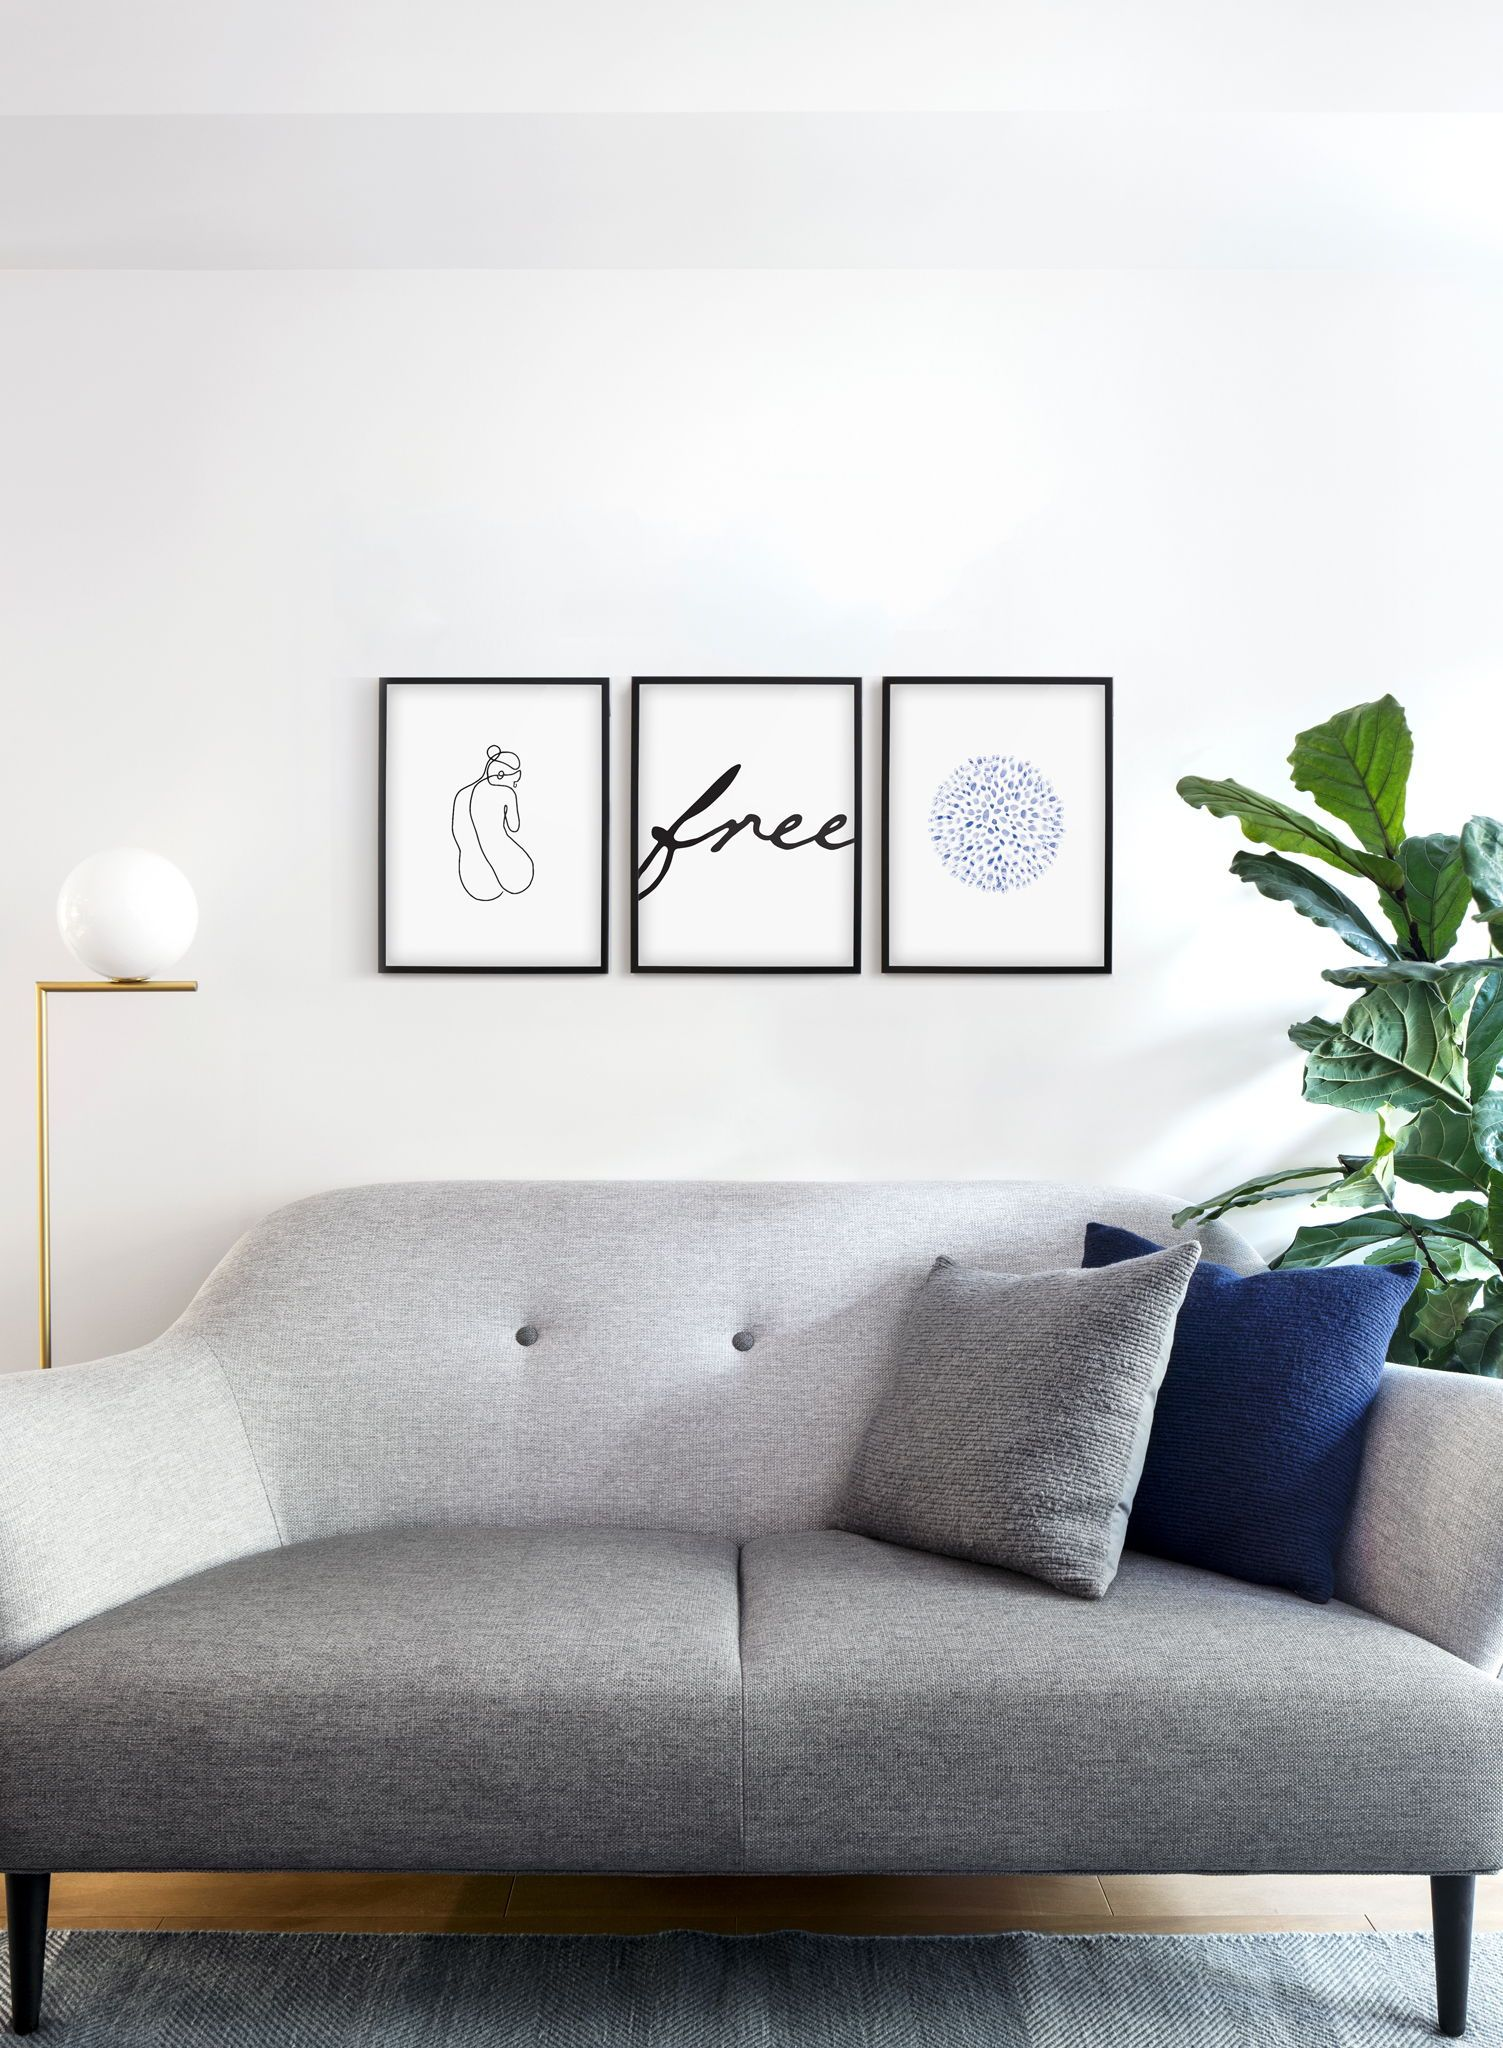 combine fine line drawing graphic art with blue hues and modern rh pinterest com